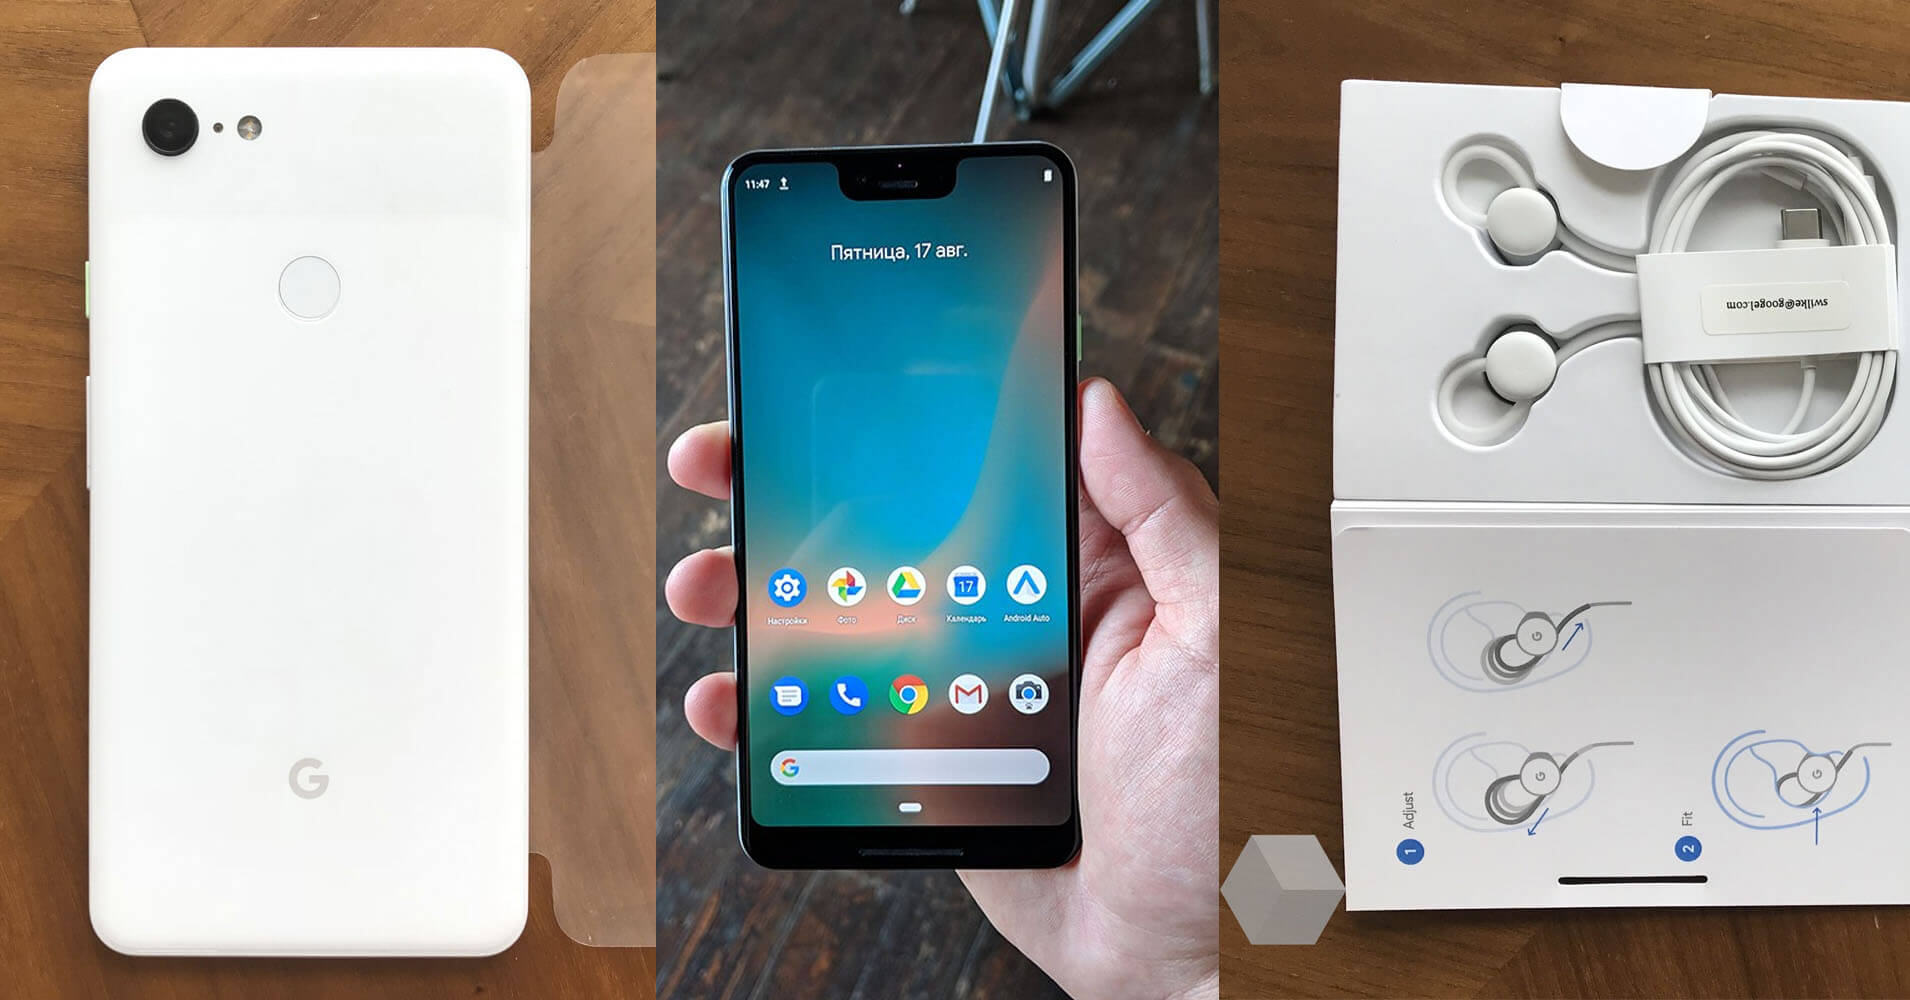 Novo Pixel 3 XL, apresentado durante o evento do Google 2018